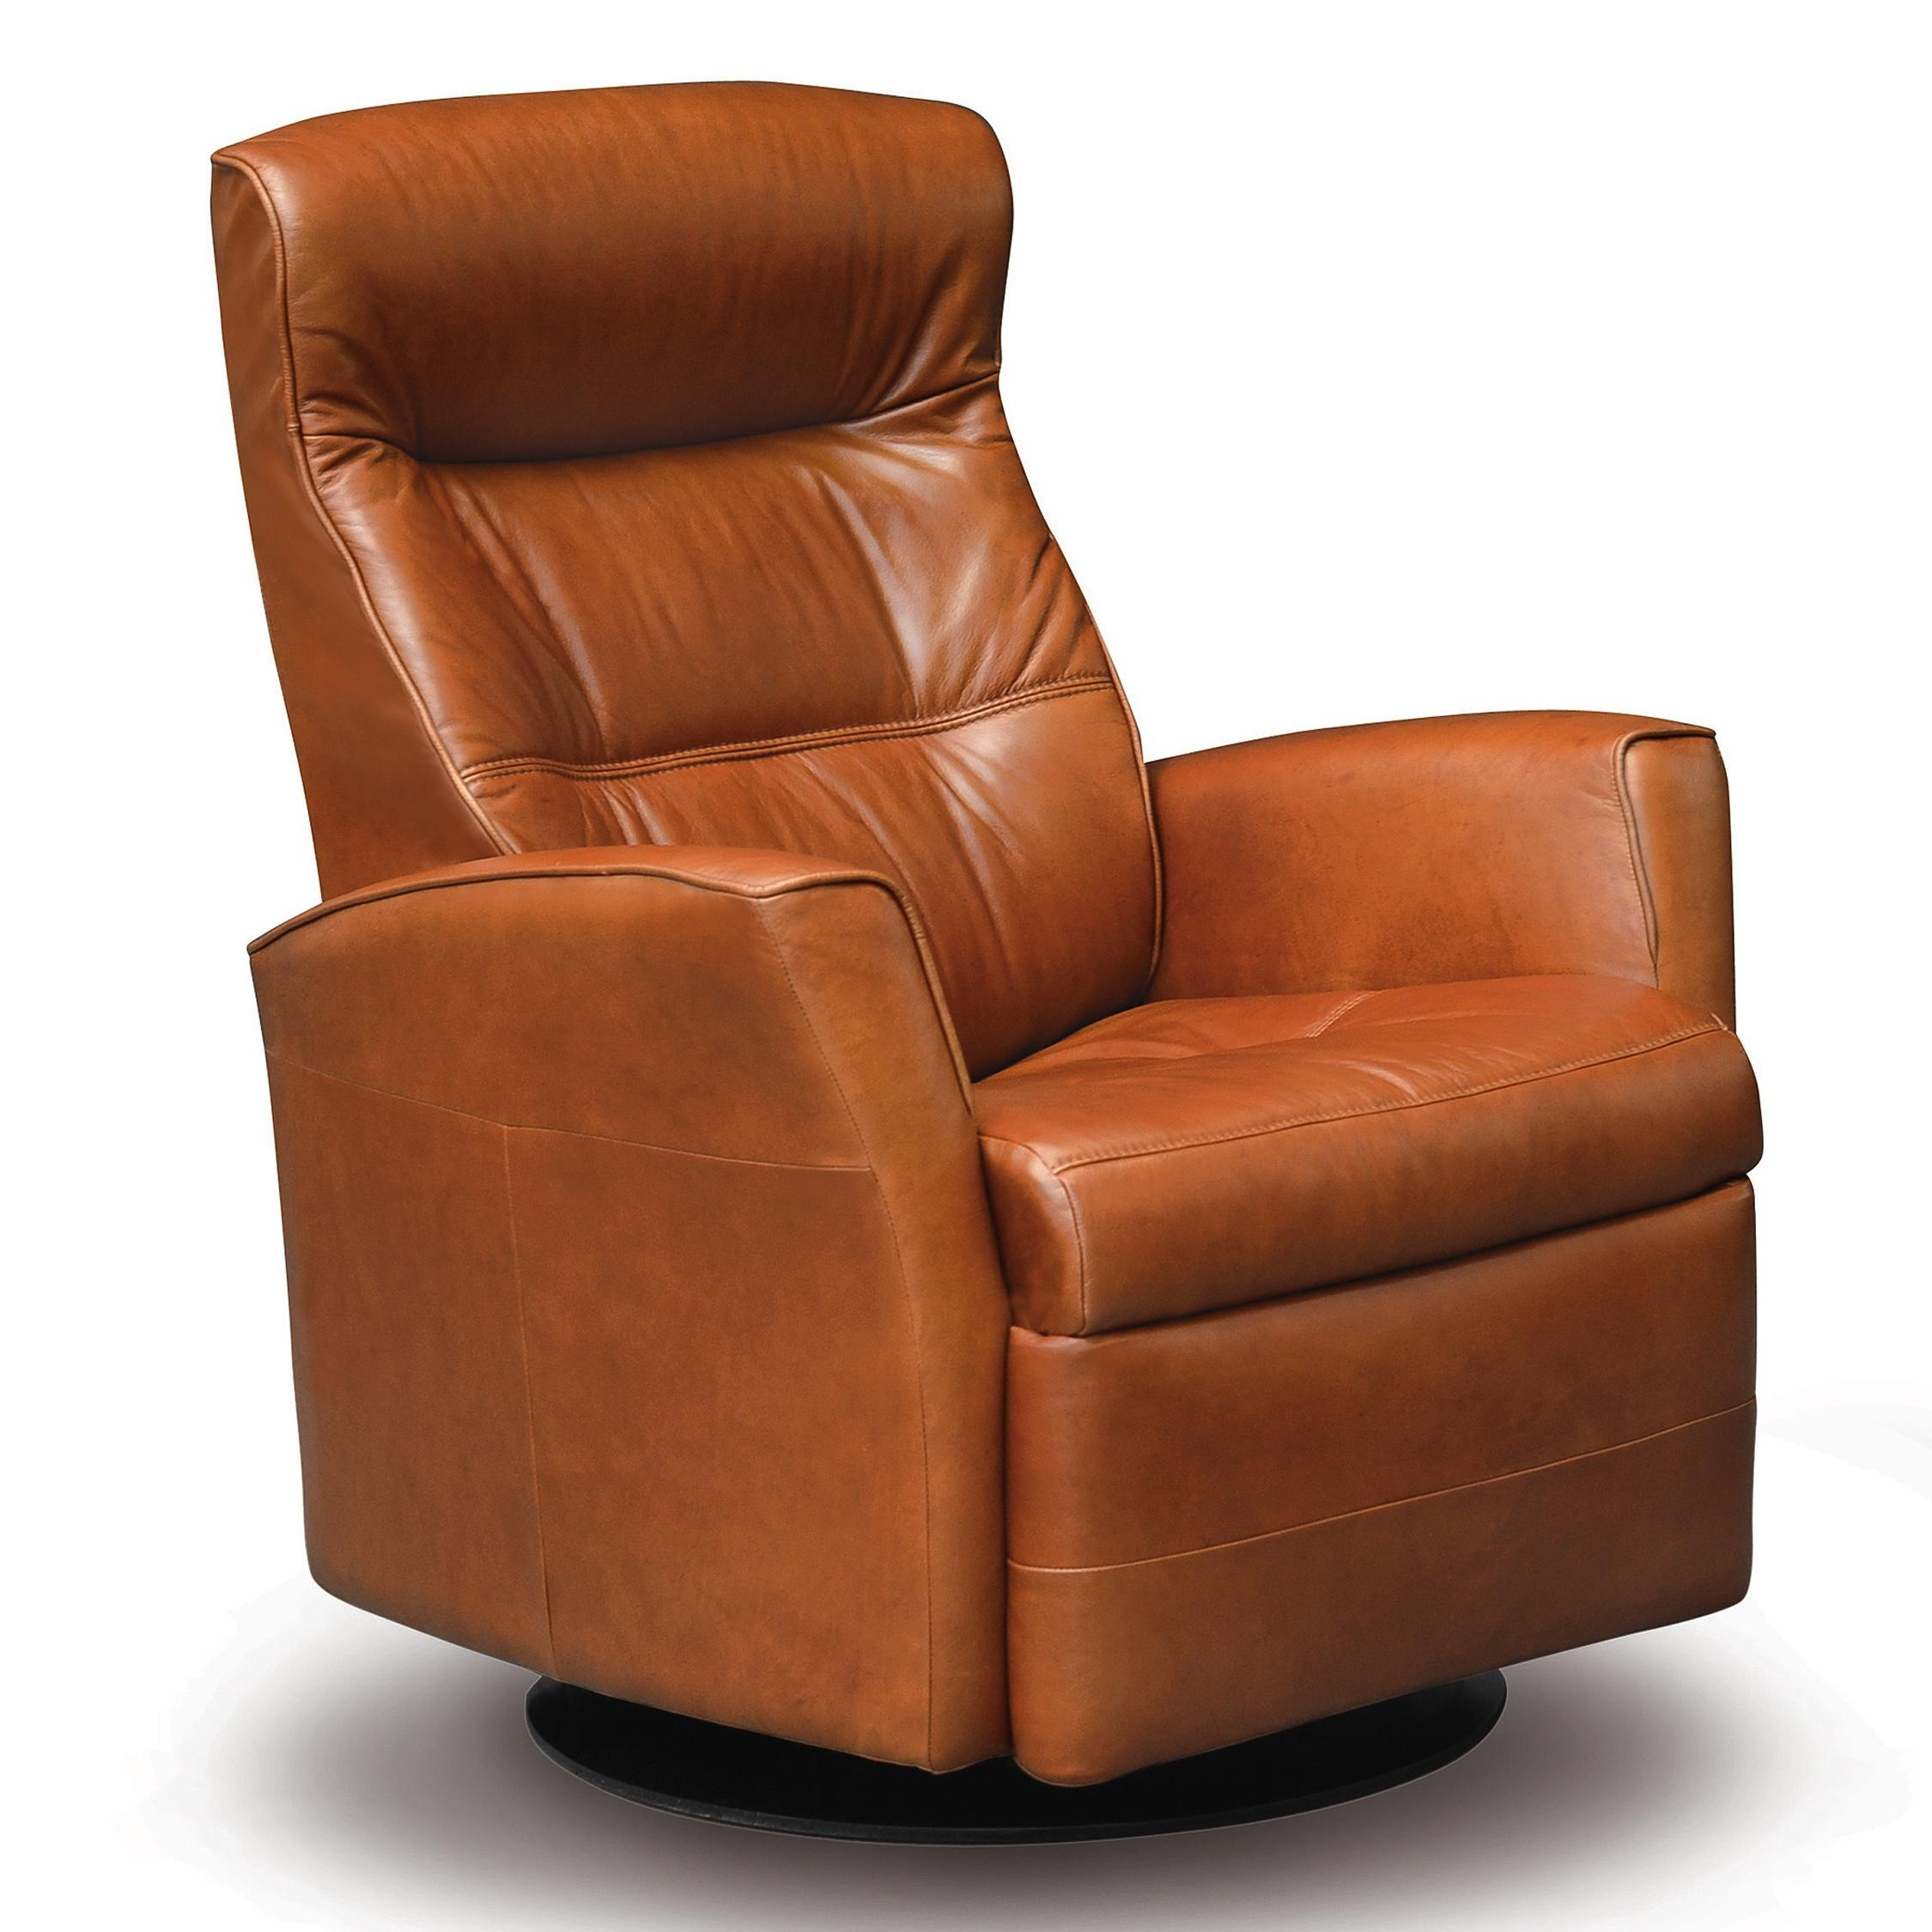 Divani Relaxer Chair Img Norway Recliners Modern Crown Recliner Relaxer With Swivel